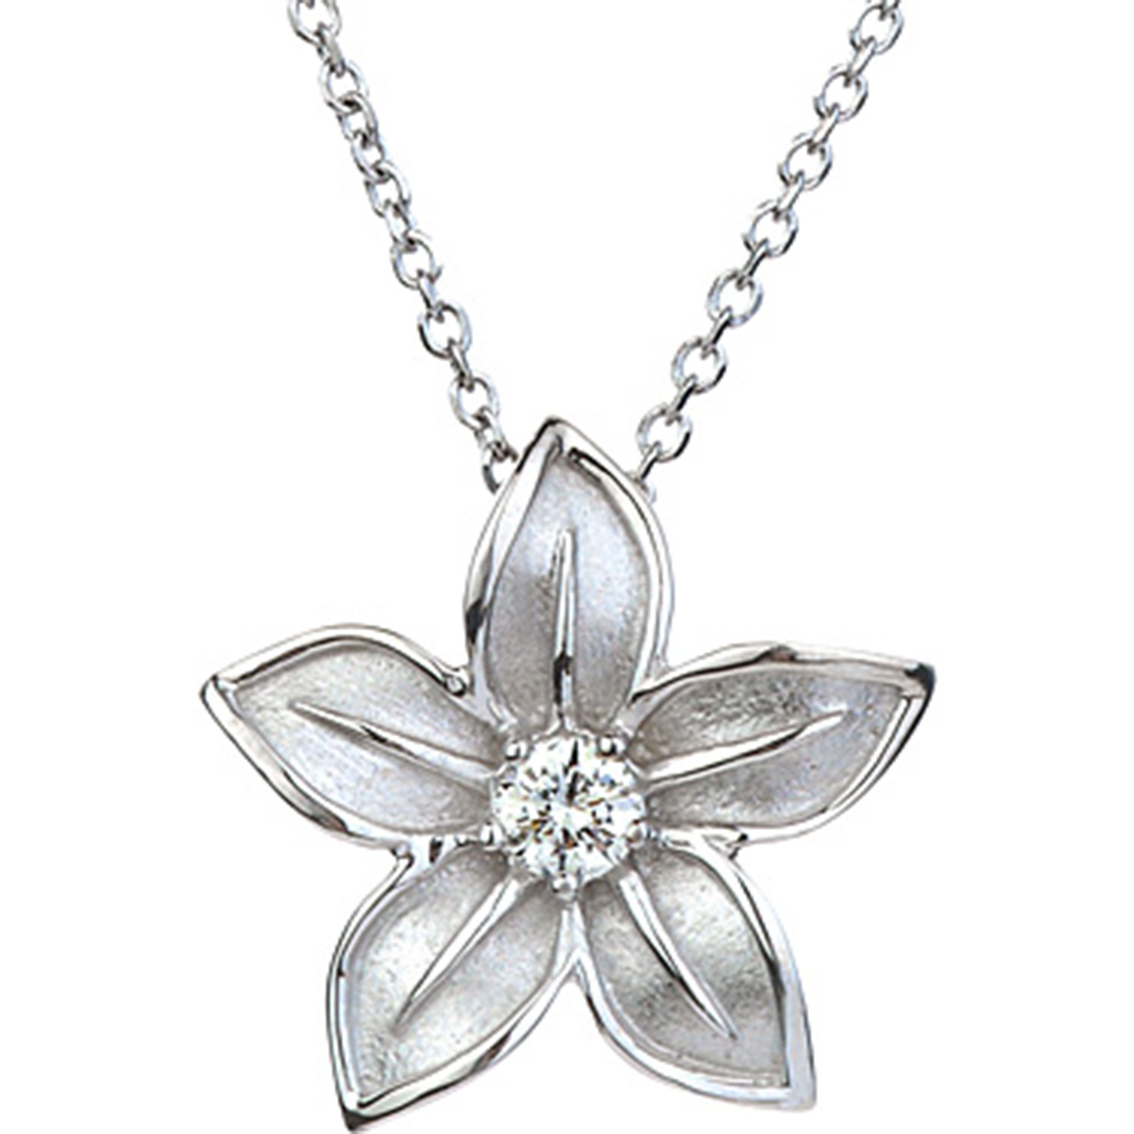 14k White Gold 1 6 Ct 5 Petal Flower Pendant With Diamond